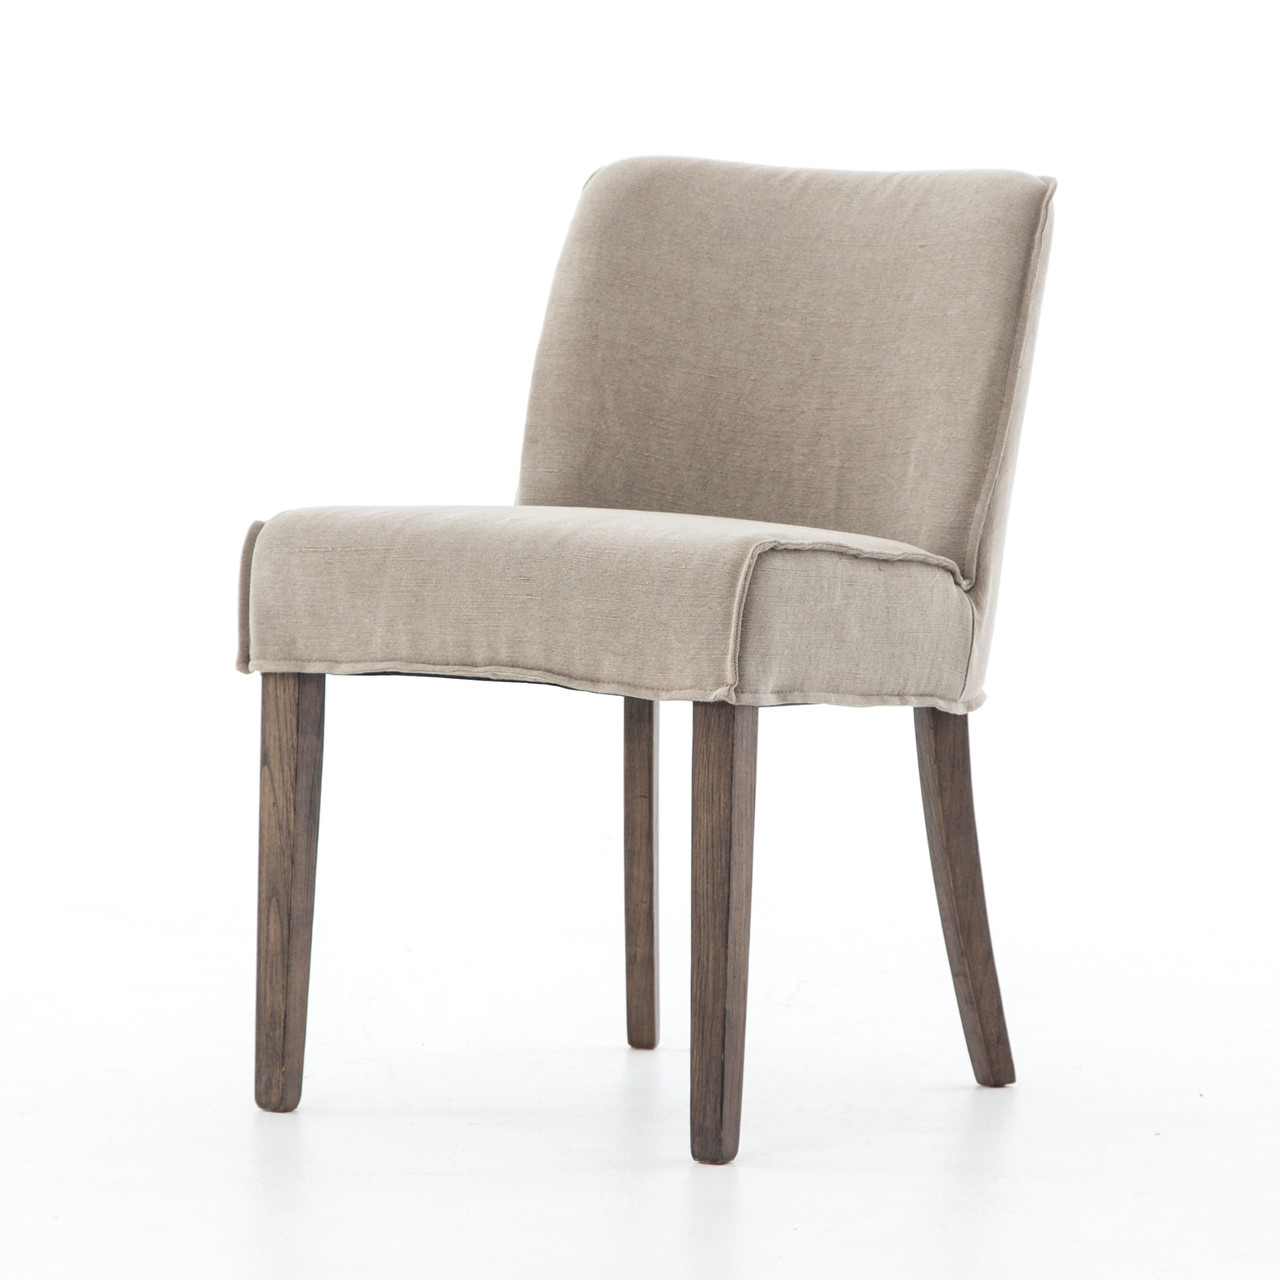 Modern Contemporary Urban Design Kitchen Dining Side Chair: Urban-Rustic Upholstered Dining Side Chair